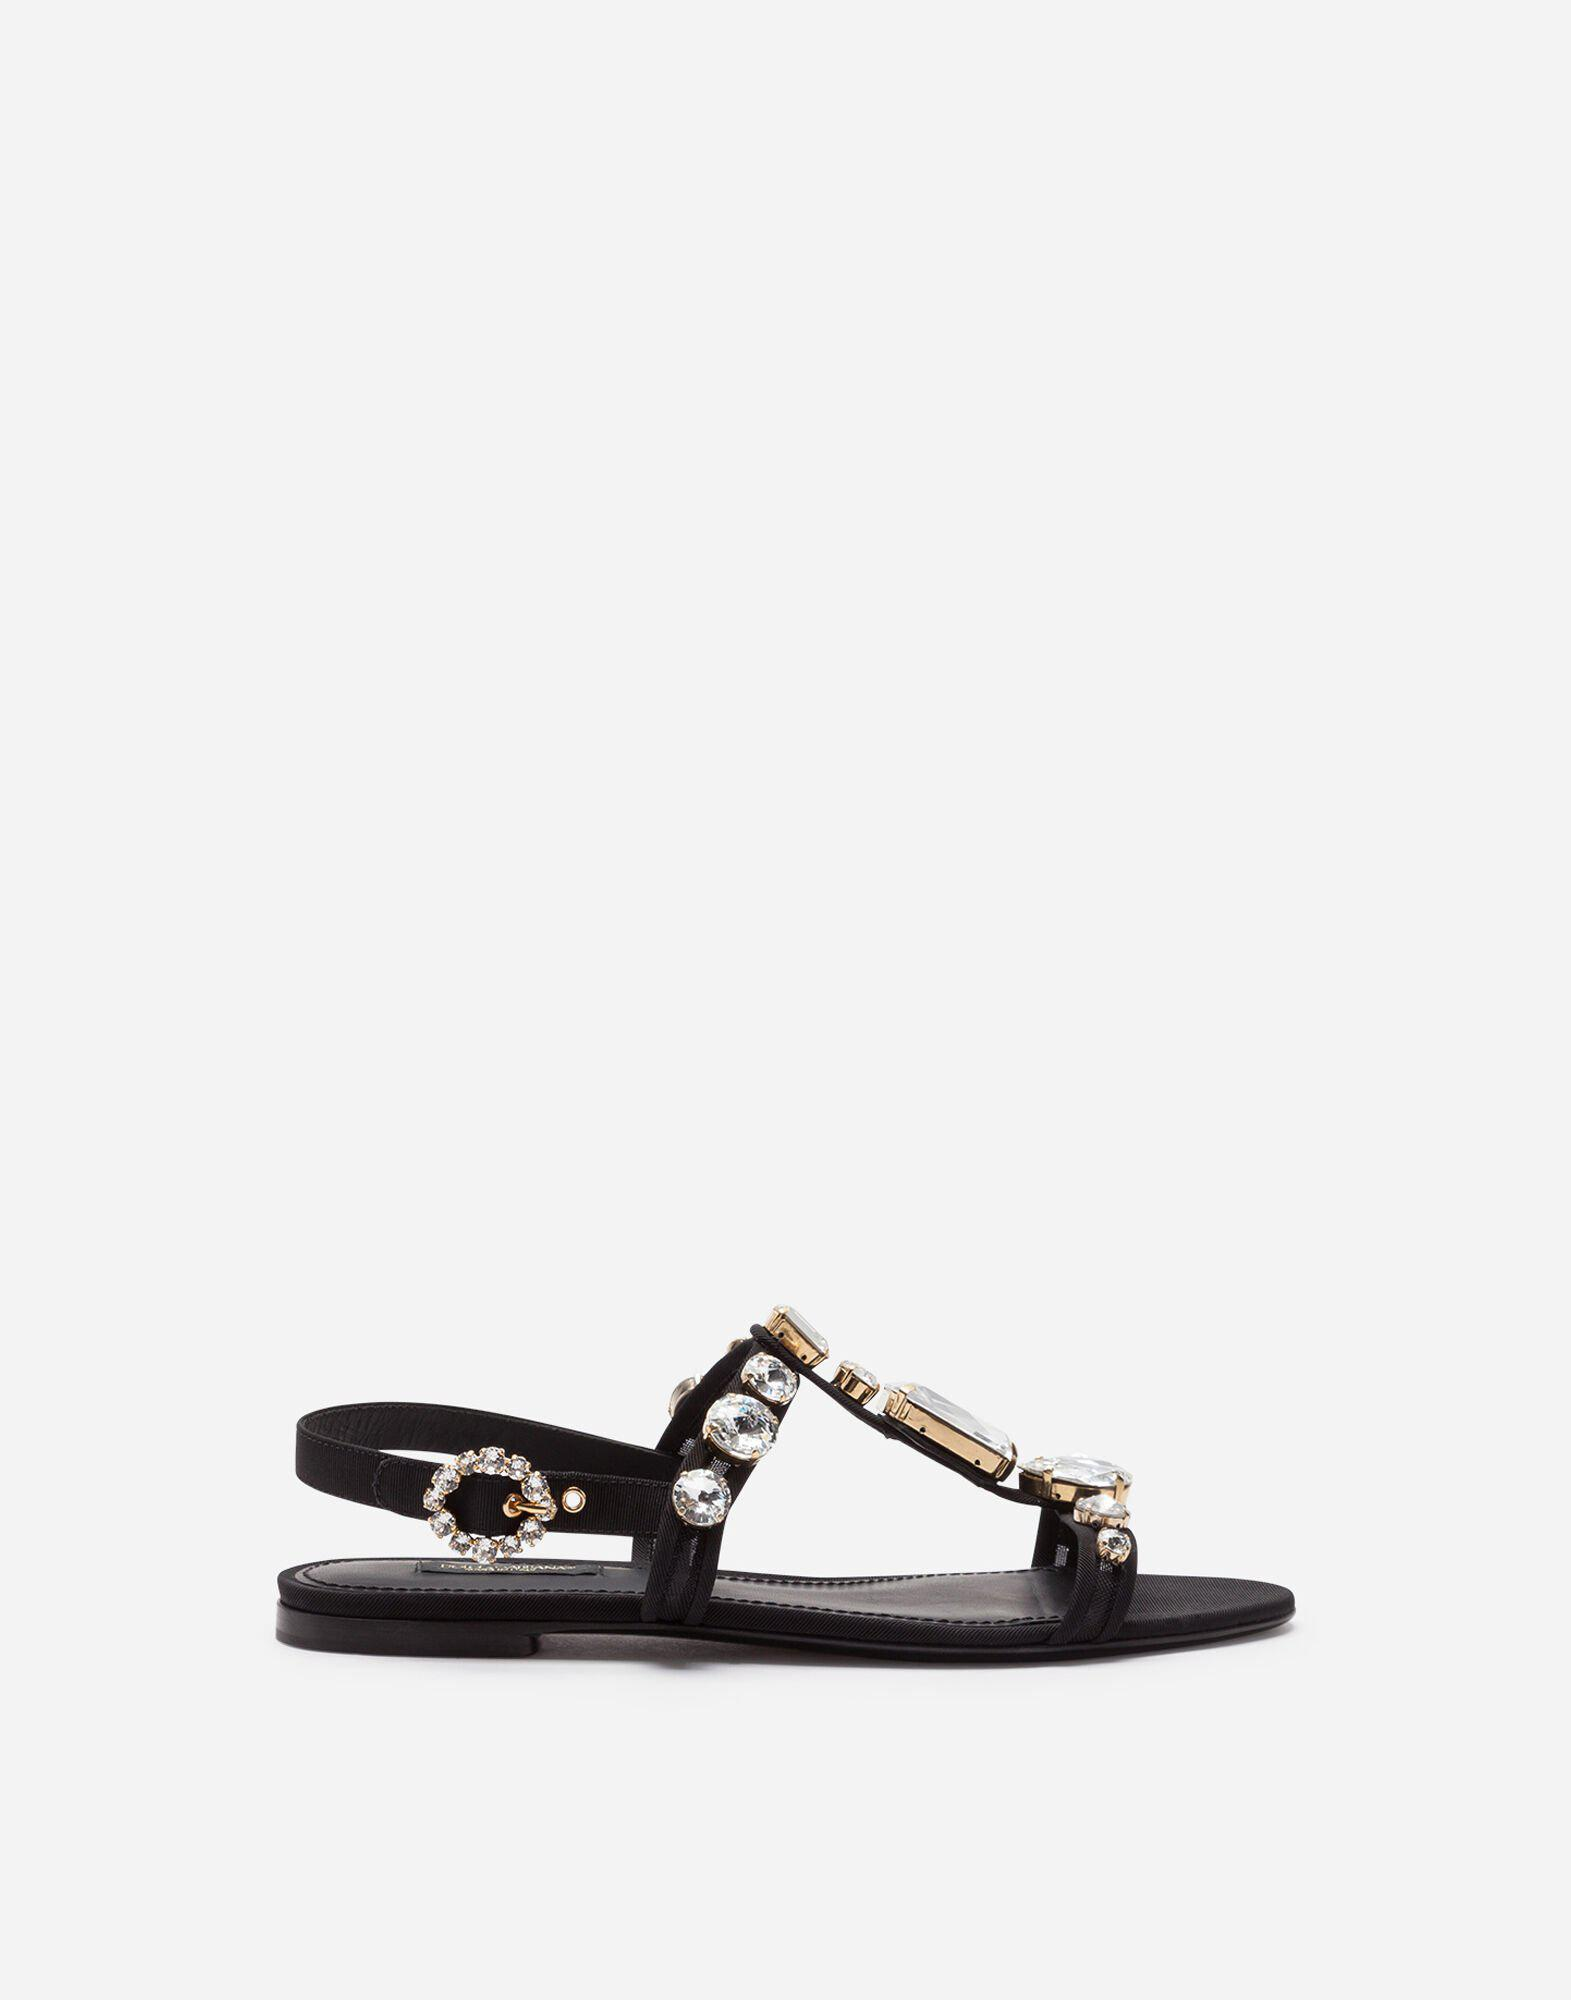 Mesh sandals with crystal embellishment